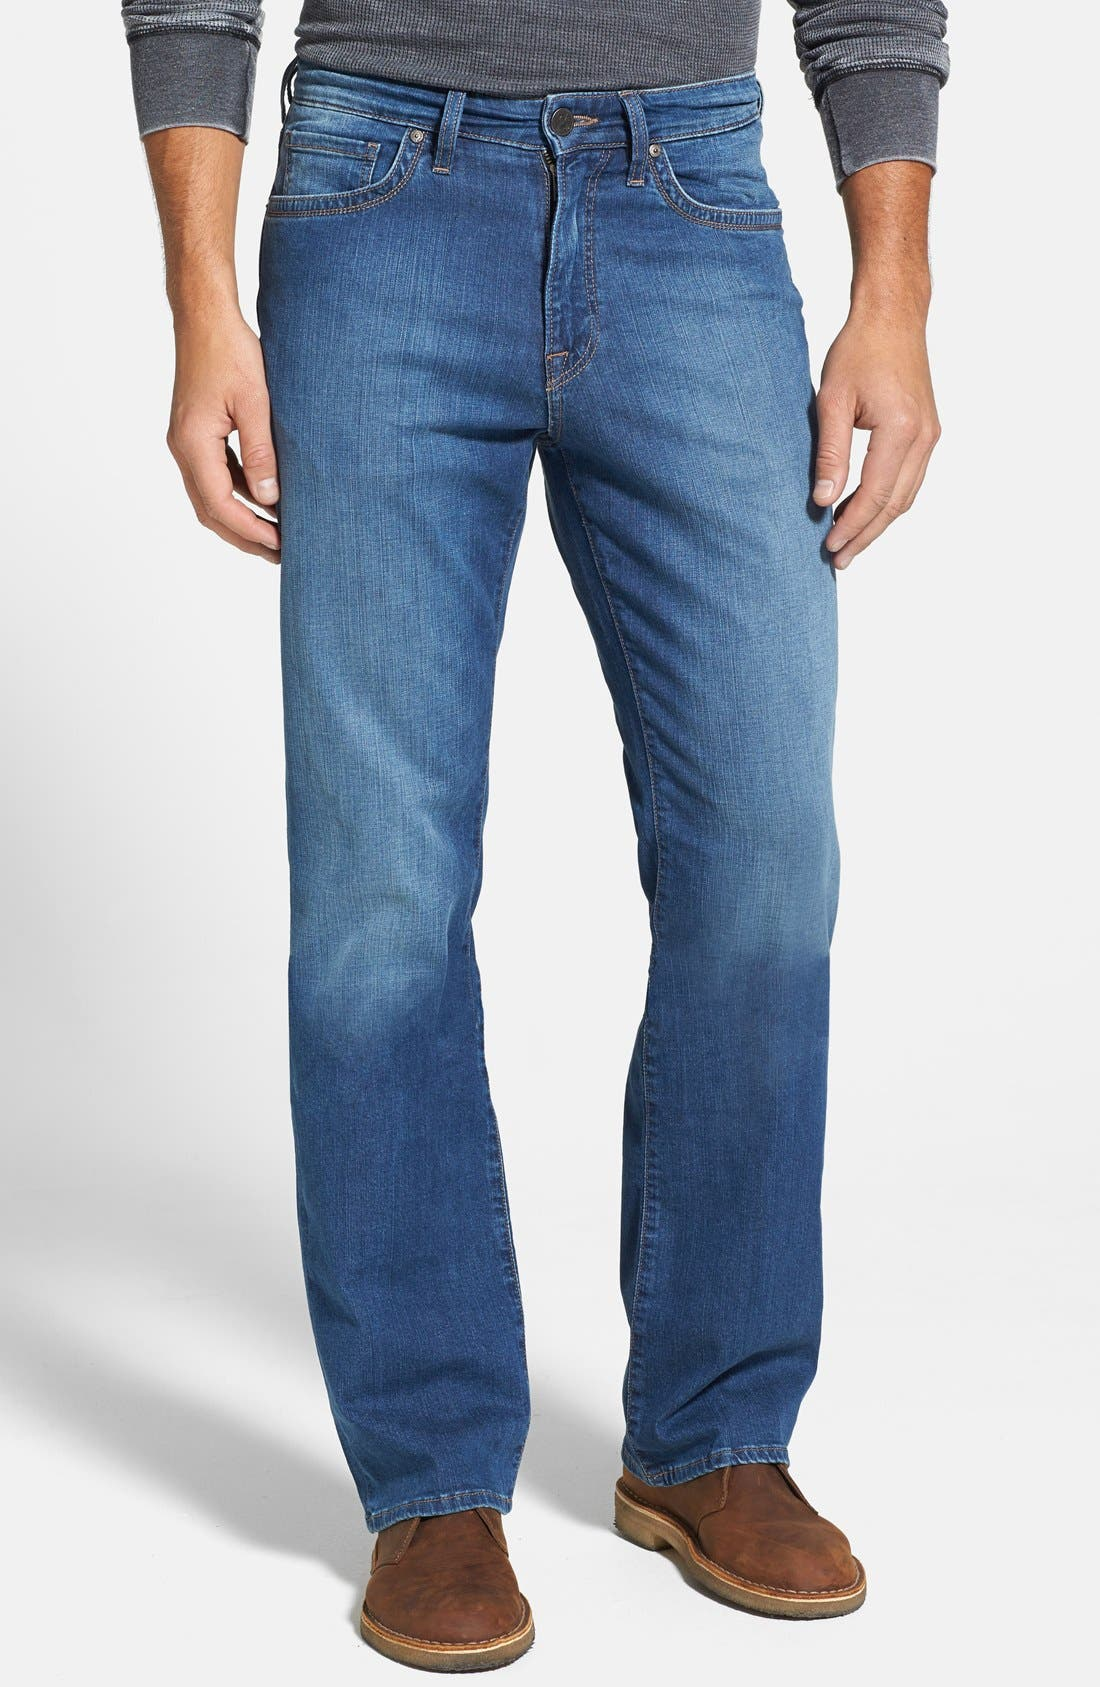 'Charisma' Classic Relaxed Fit Jeans,                         Main,                         color, MID CASHMERE